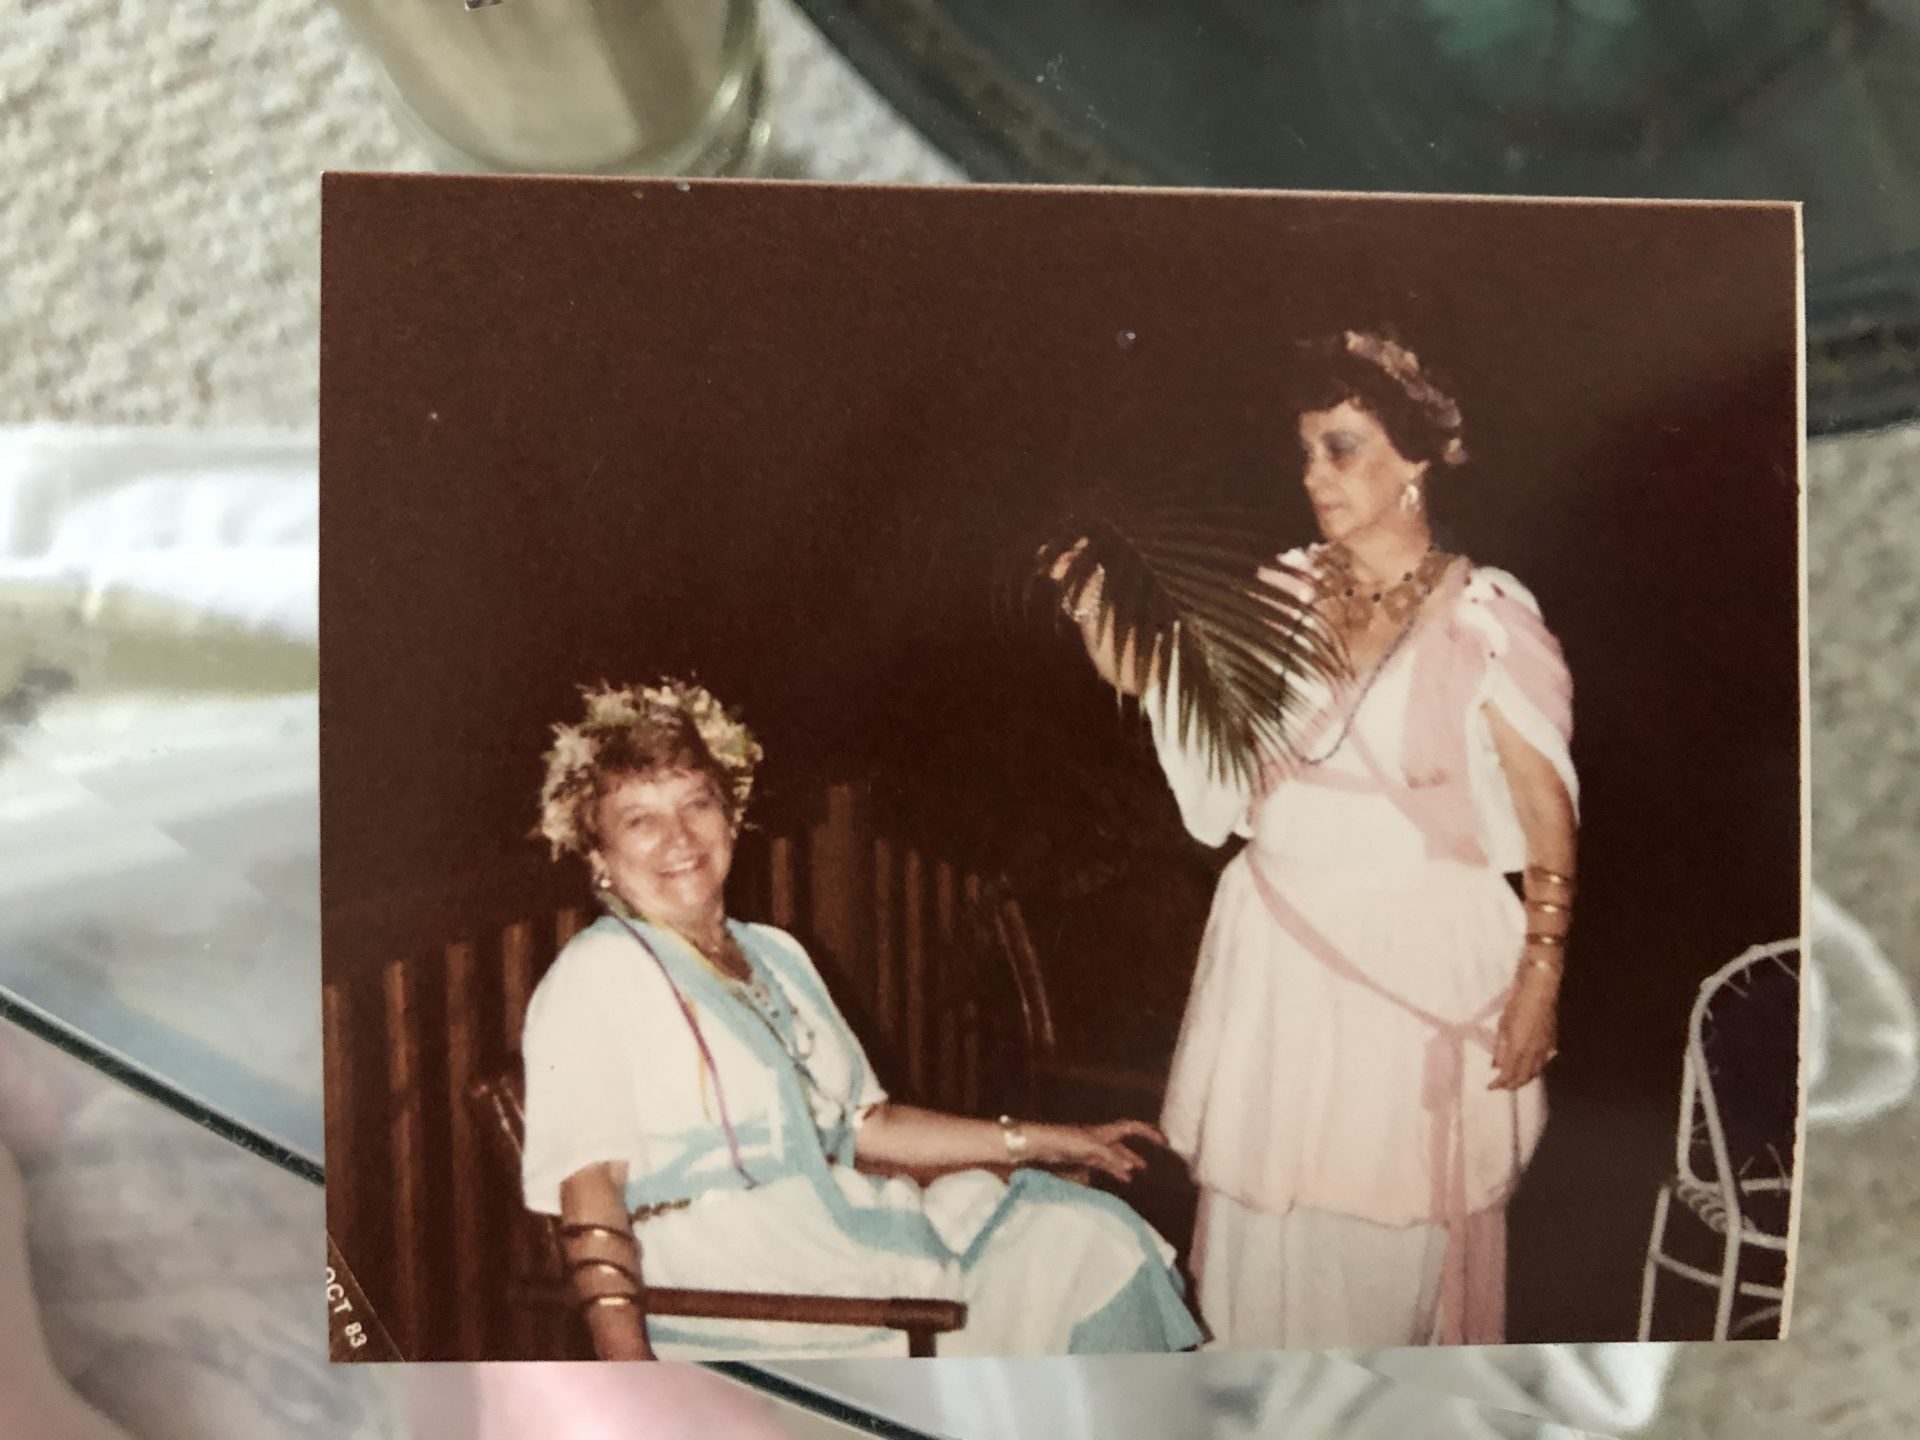 Mom with her sister Lois at an event